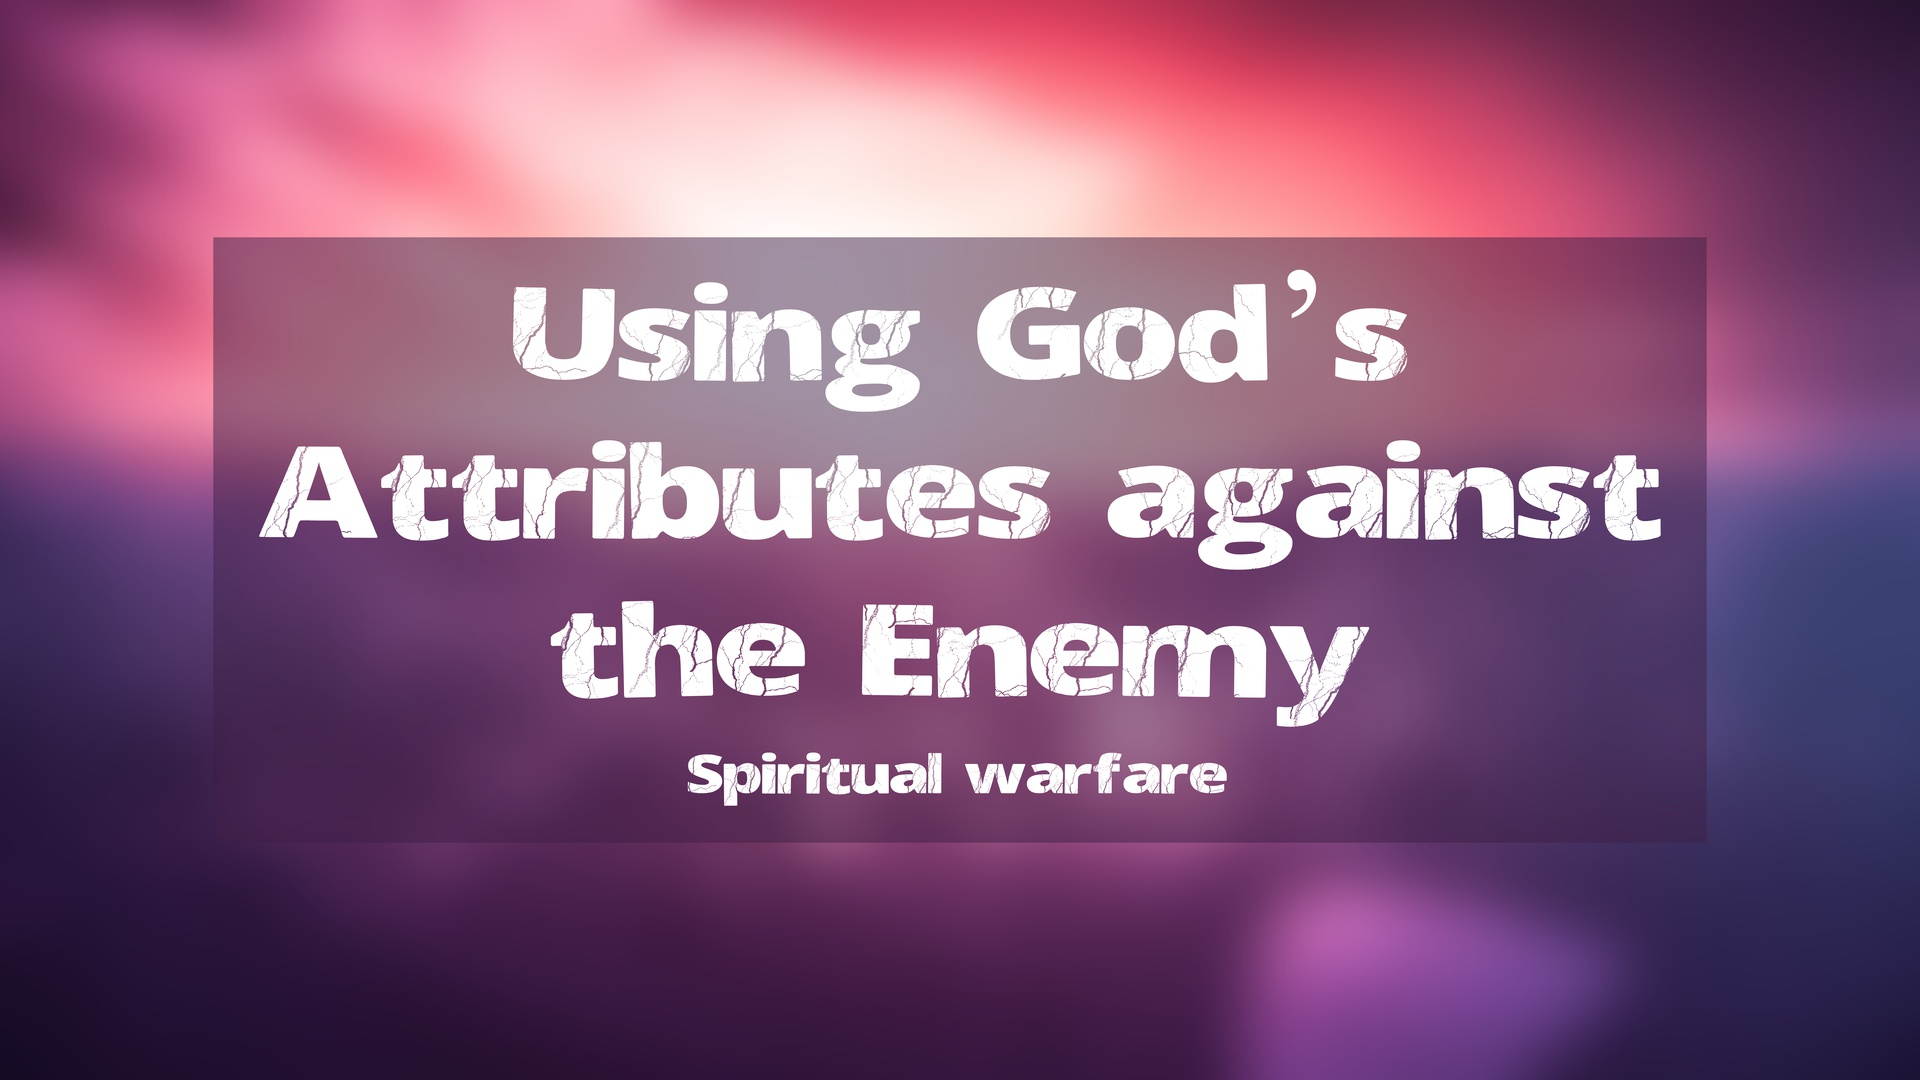 #3 Using God's Attributes Against The Enemy